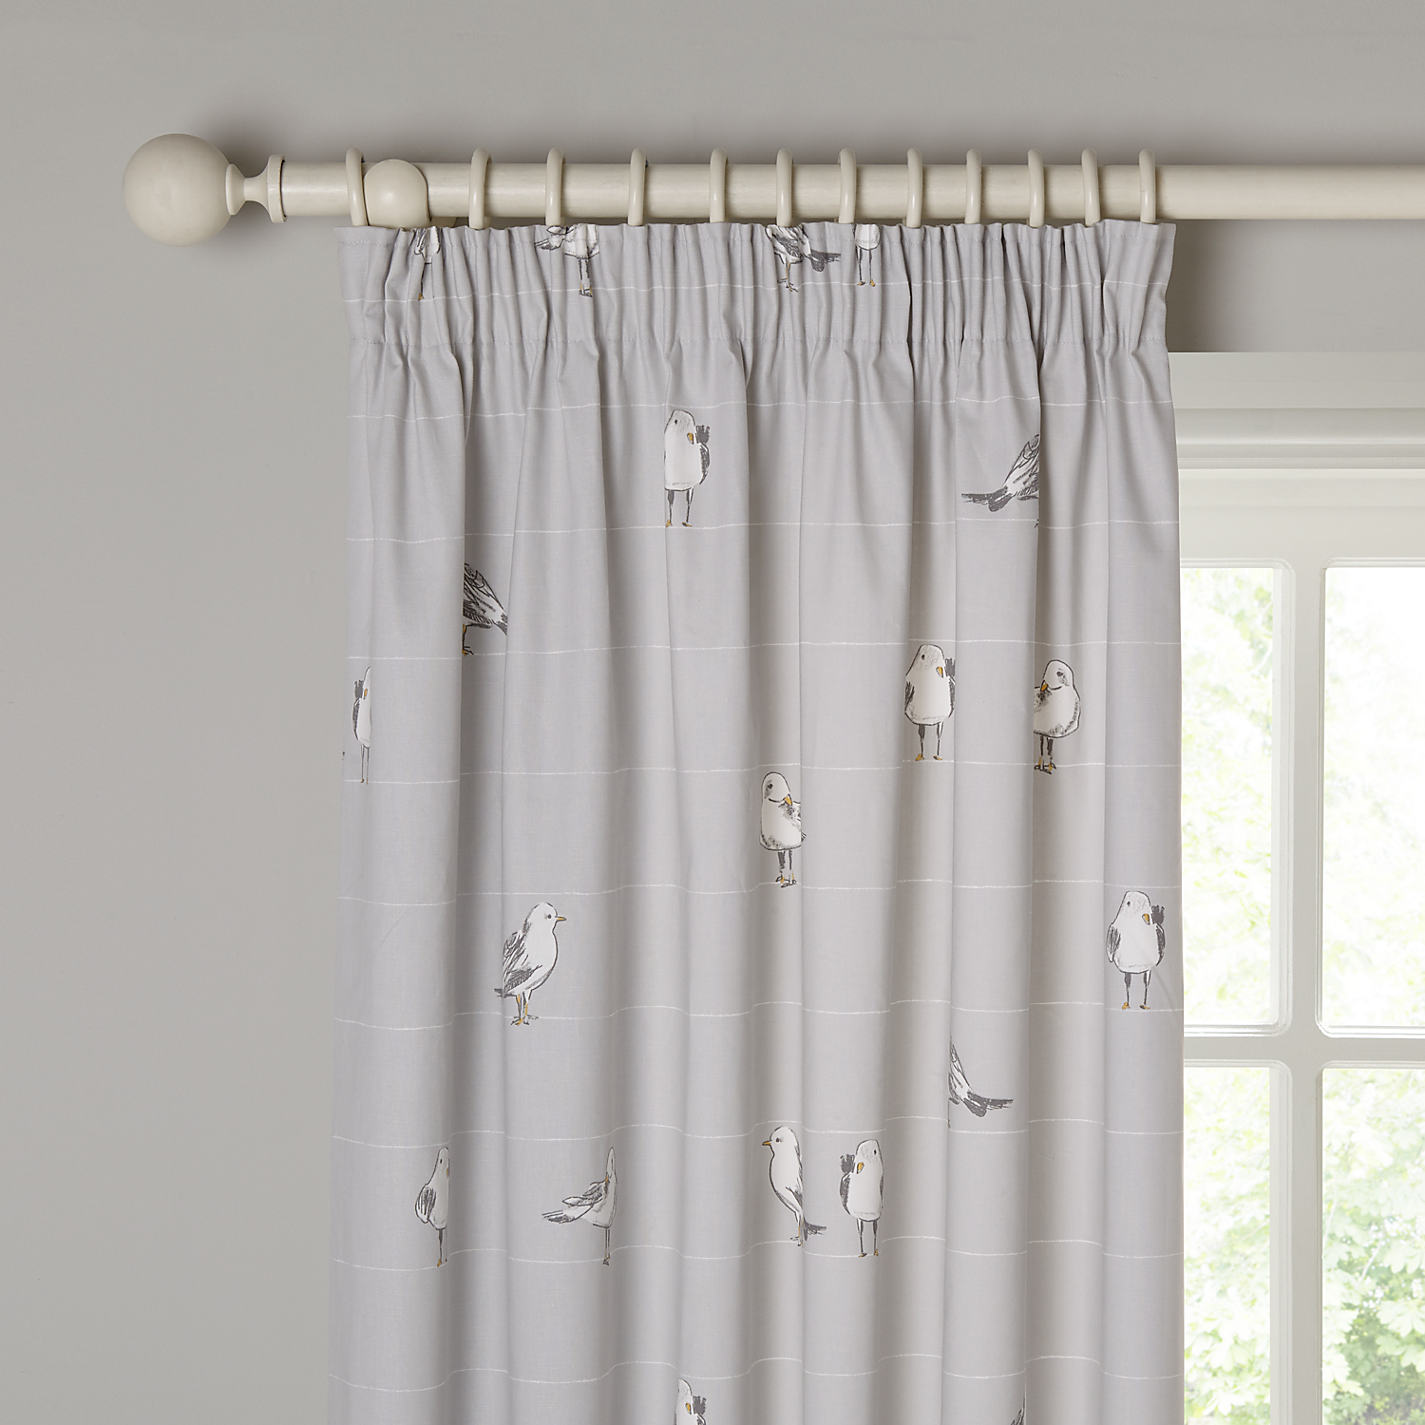 John lewis star blackout curtains curtain menzilperde net for Star material for curtains